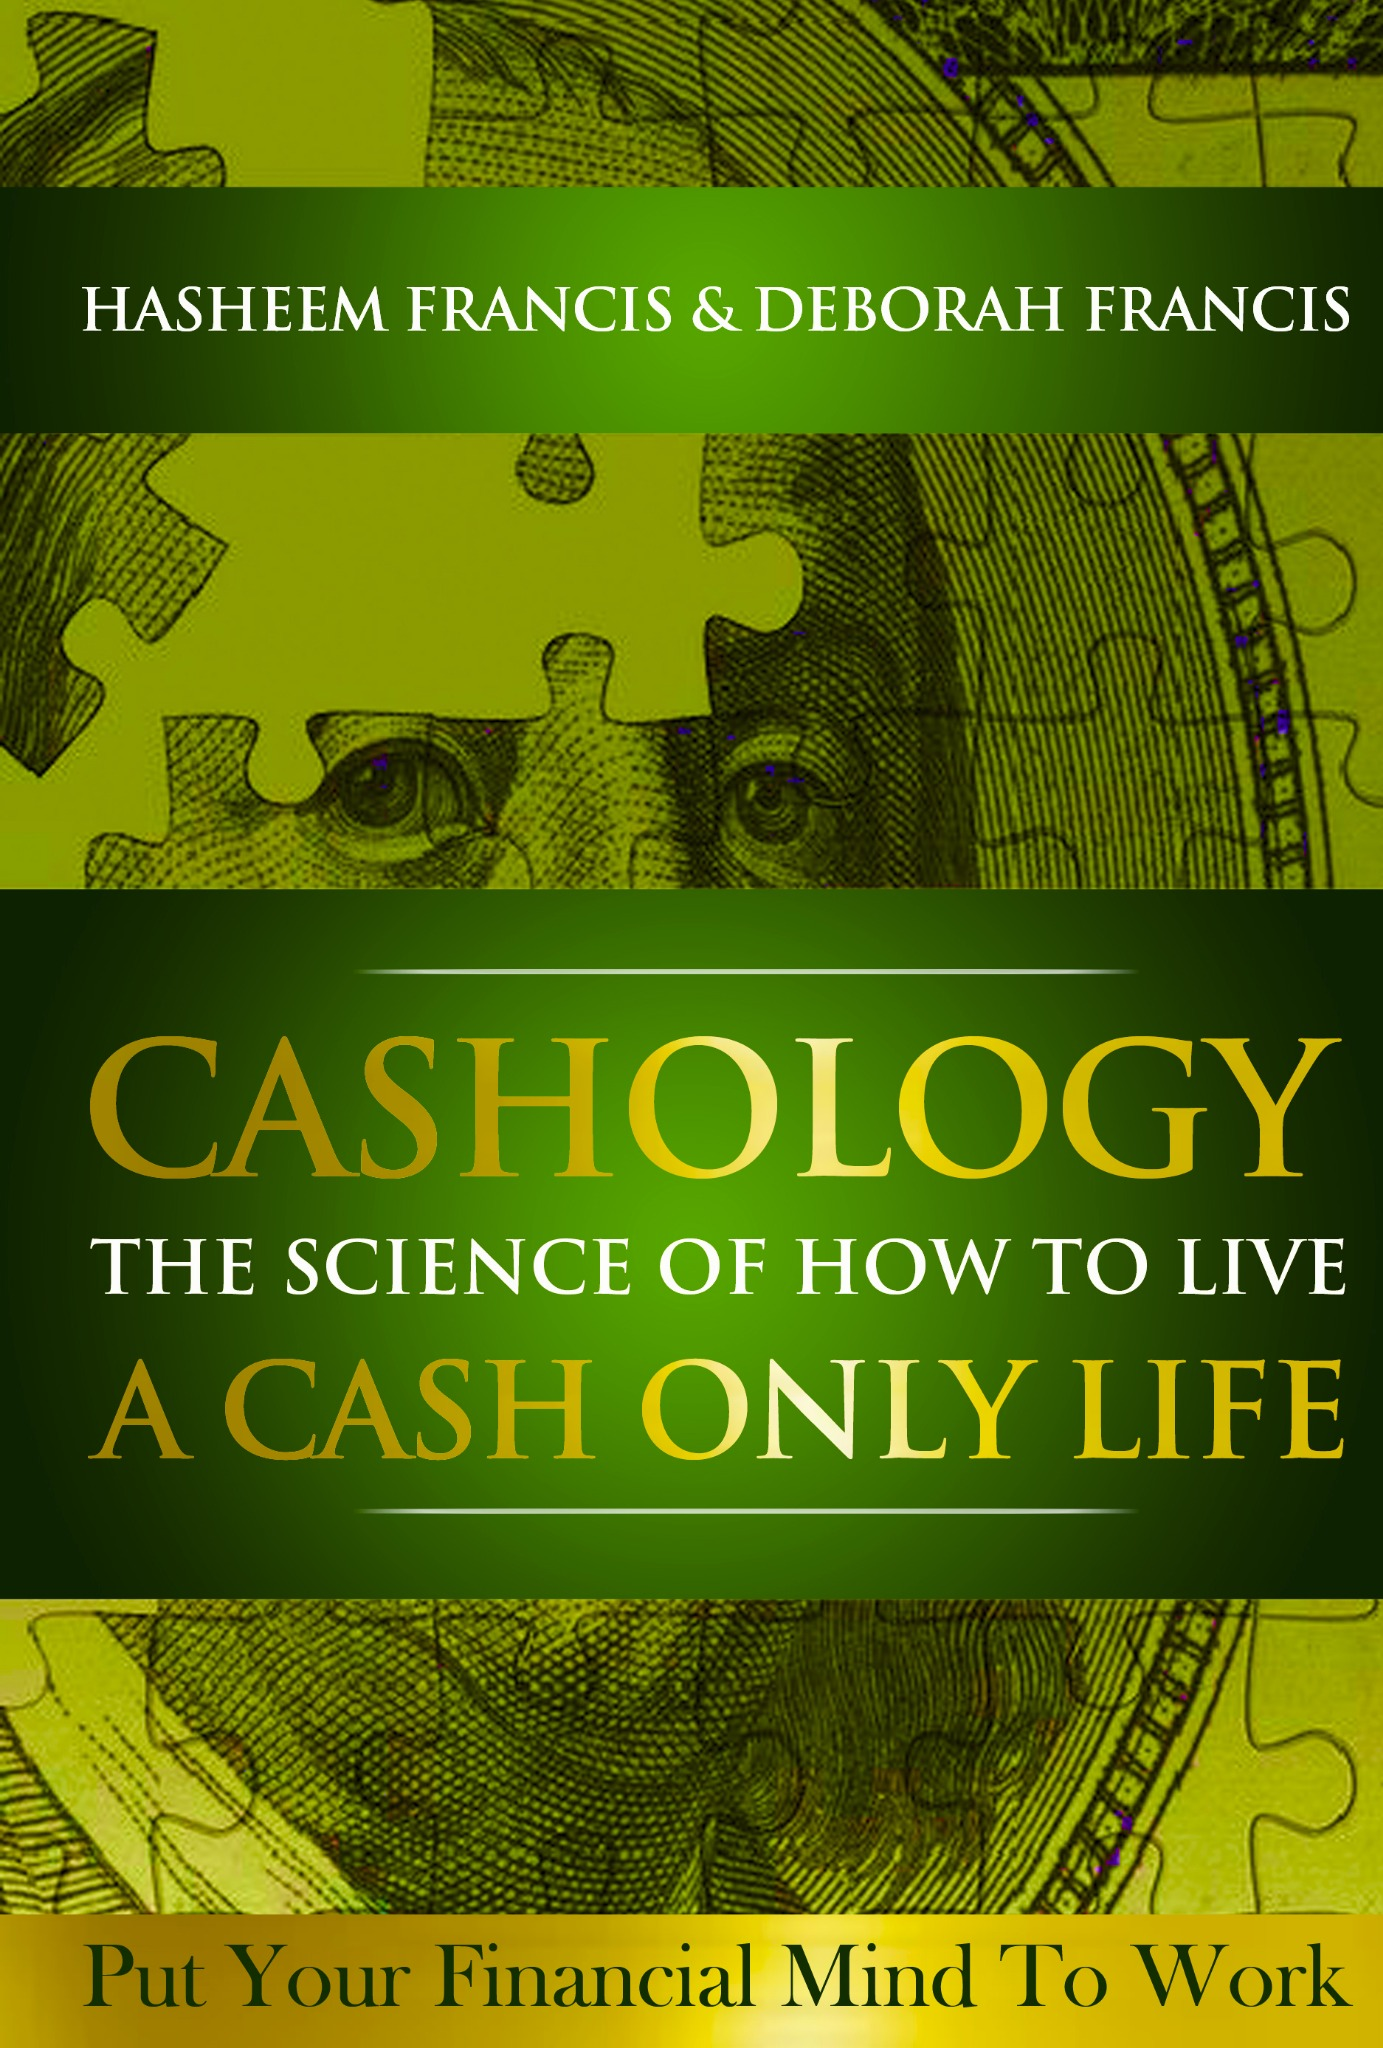 Cashology The Science of Living A CASH ONLY Life